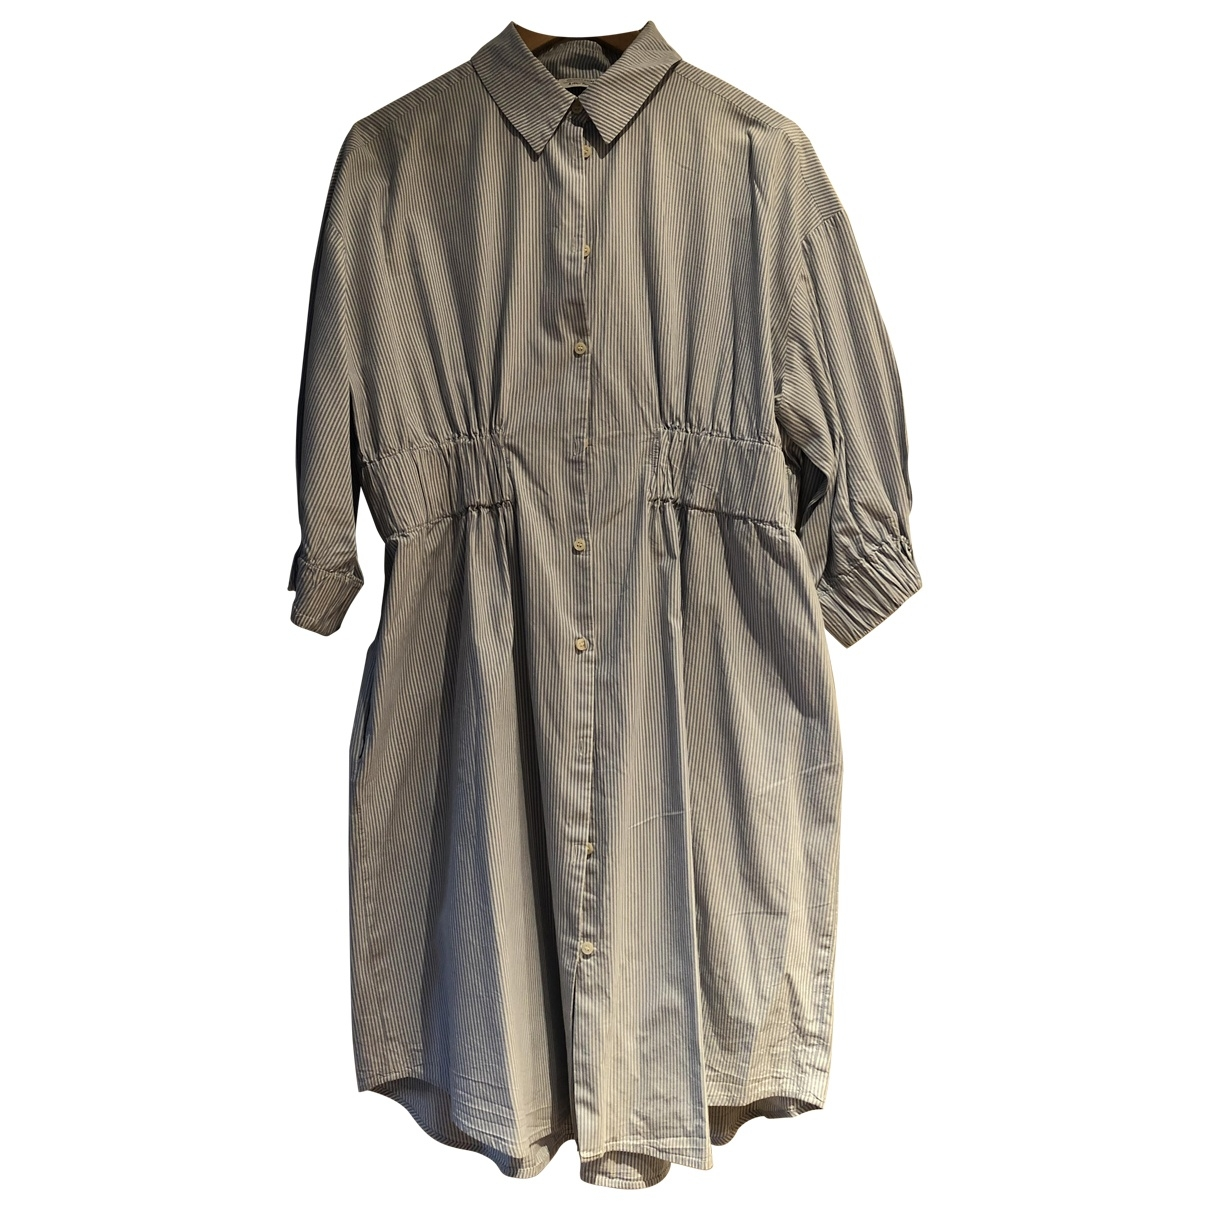 & Stories \N Cotton dress for Women 10 US